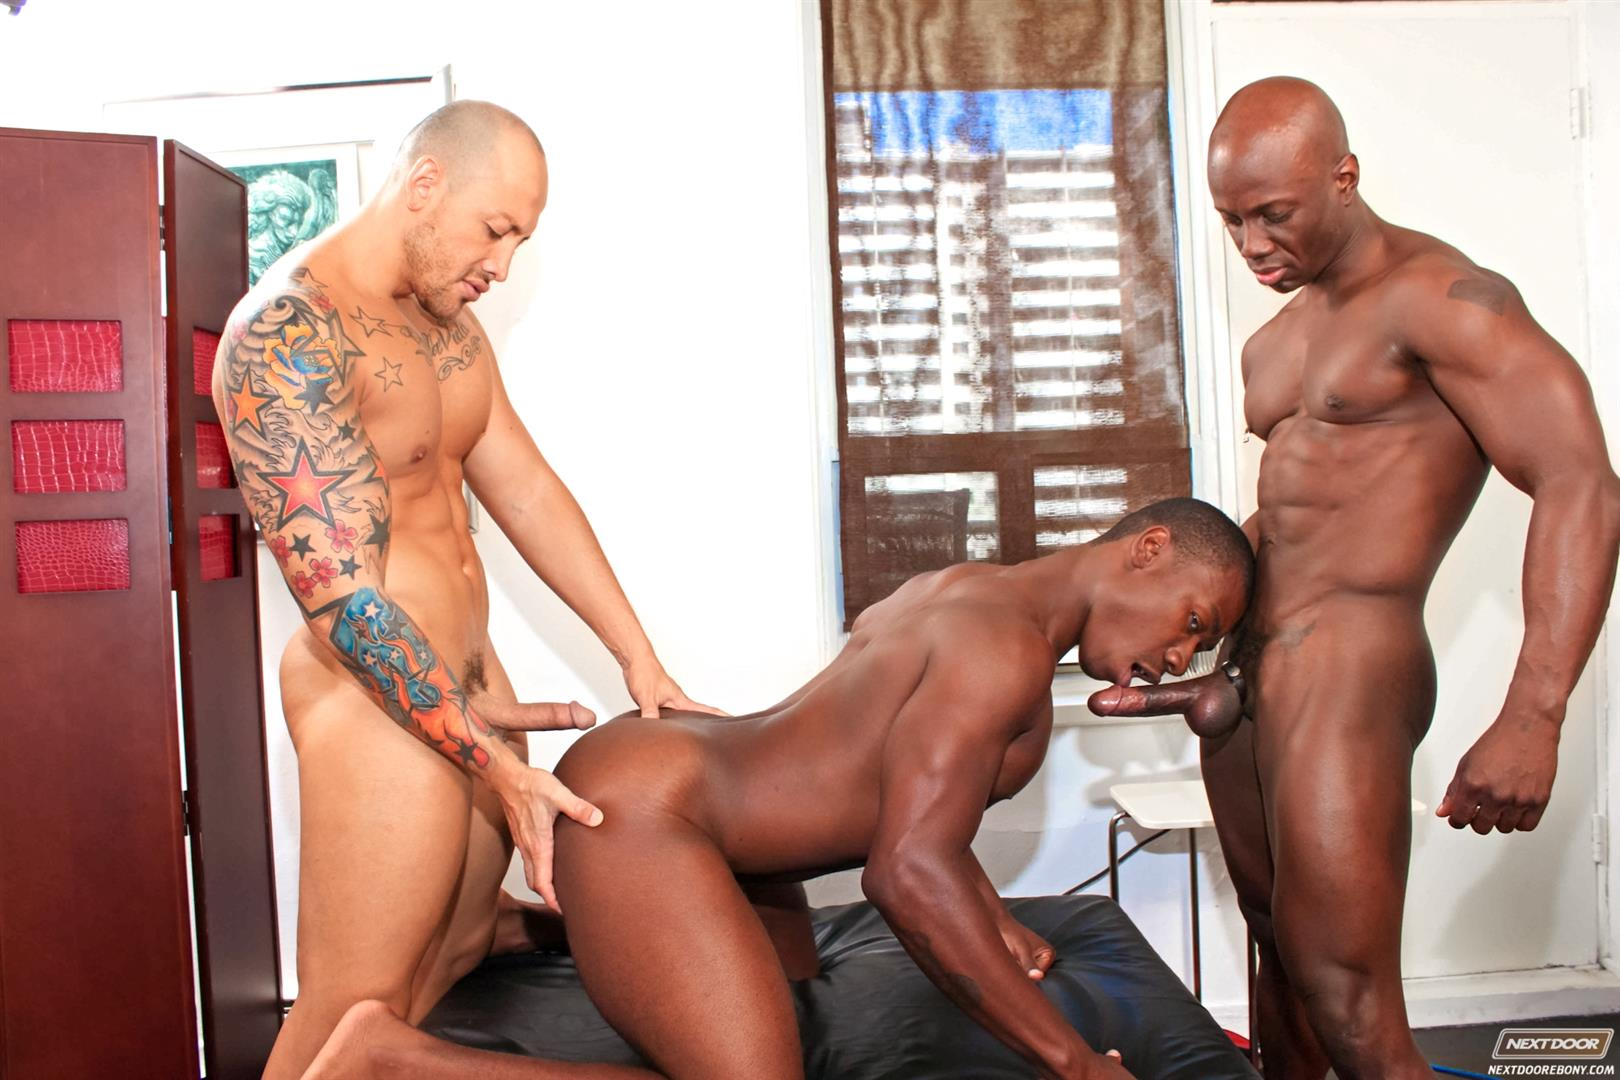 Next Door Ebony Jordano Santoro and Jay Black and Damian Brooks Interracial Gay Fucking Threeway Amateur Gay Porn 08 Interracial Muscle Couple Picks Up A Black Muscle Stud In The Park